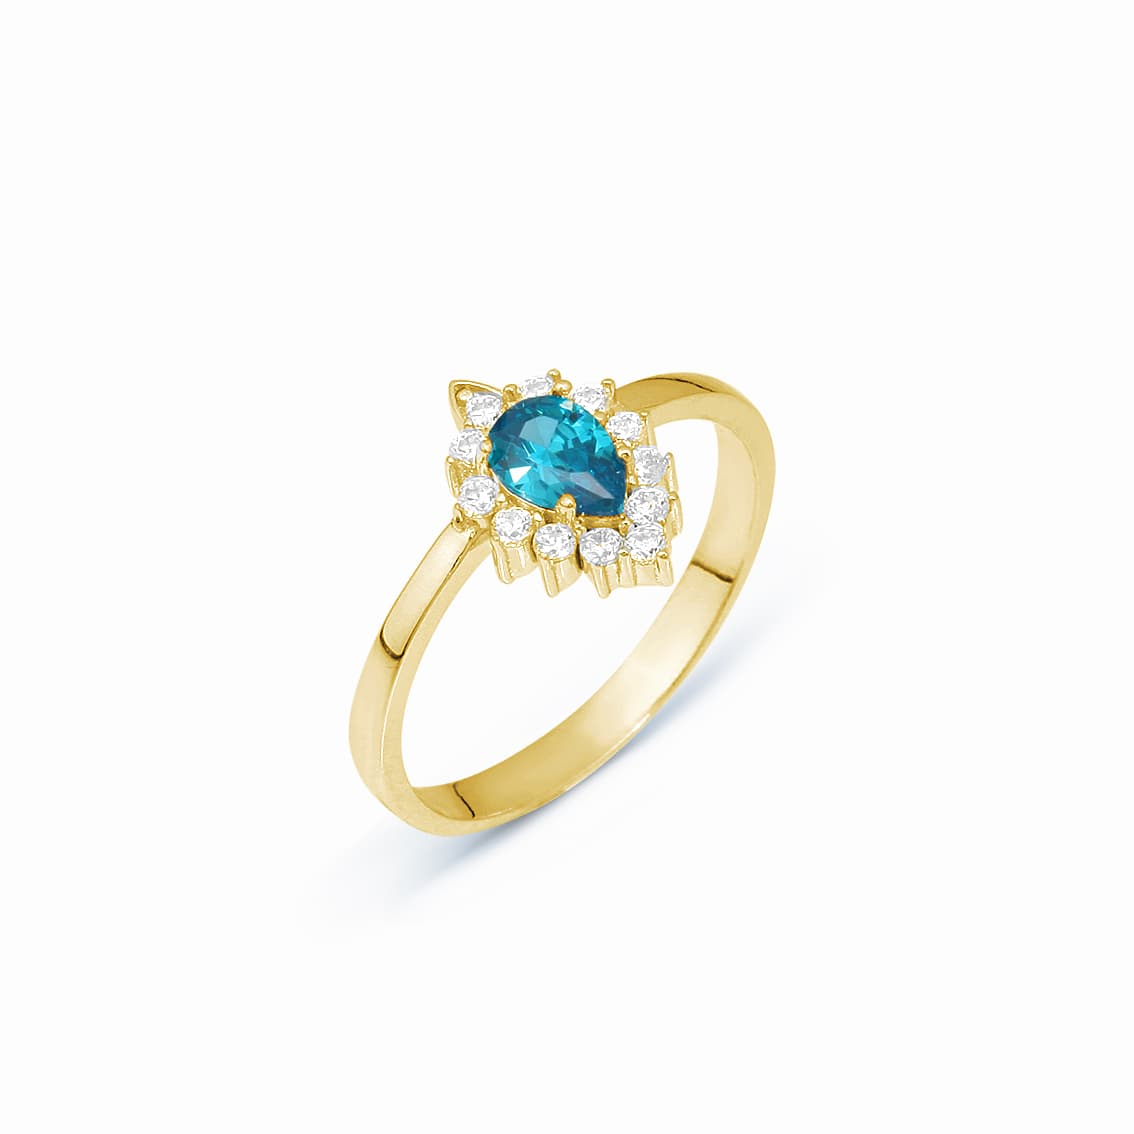 Drop Colored Gemstone Ring - Blue Topaz